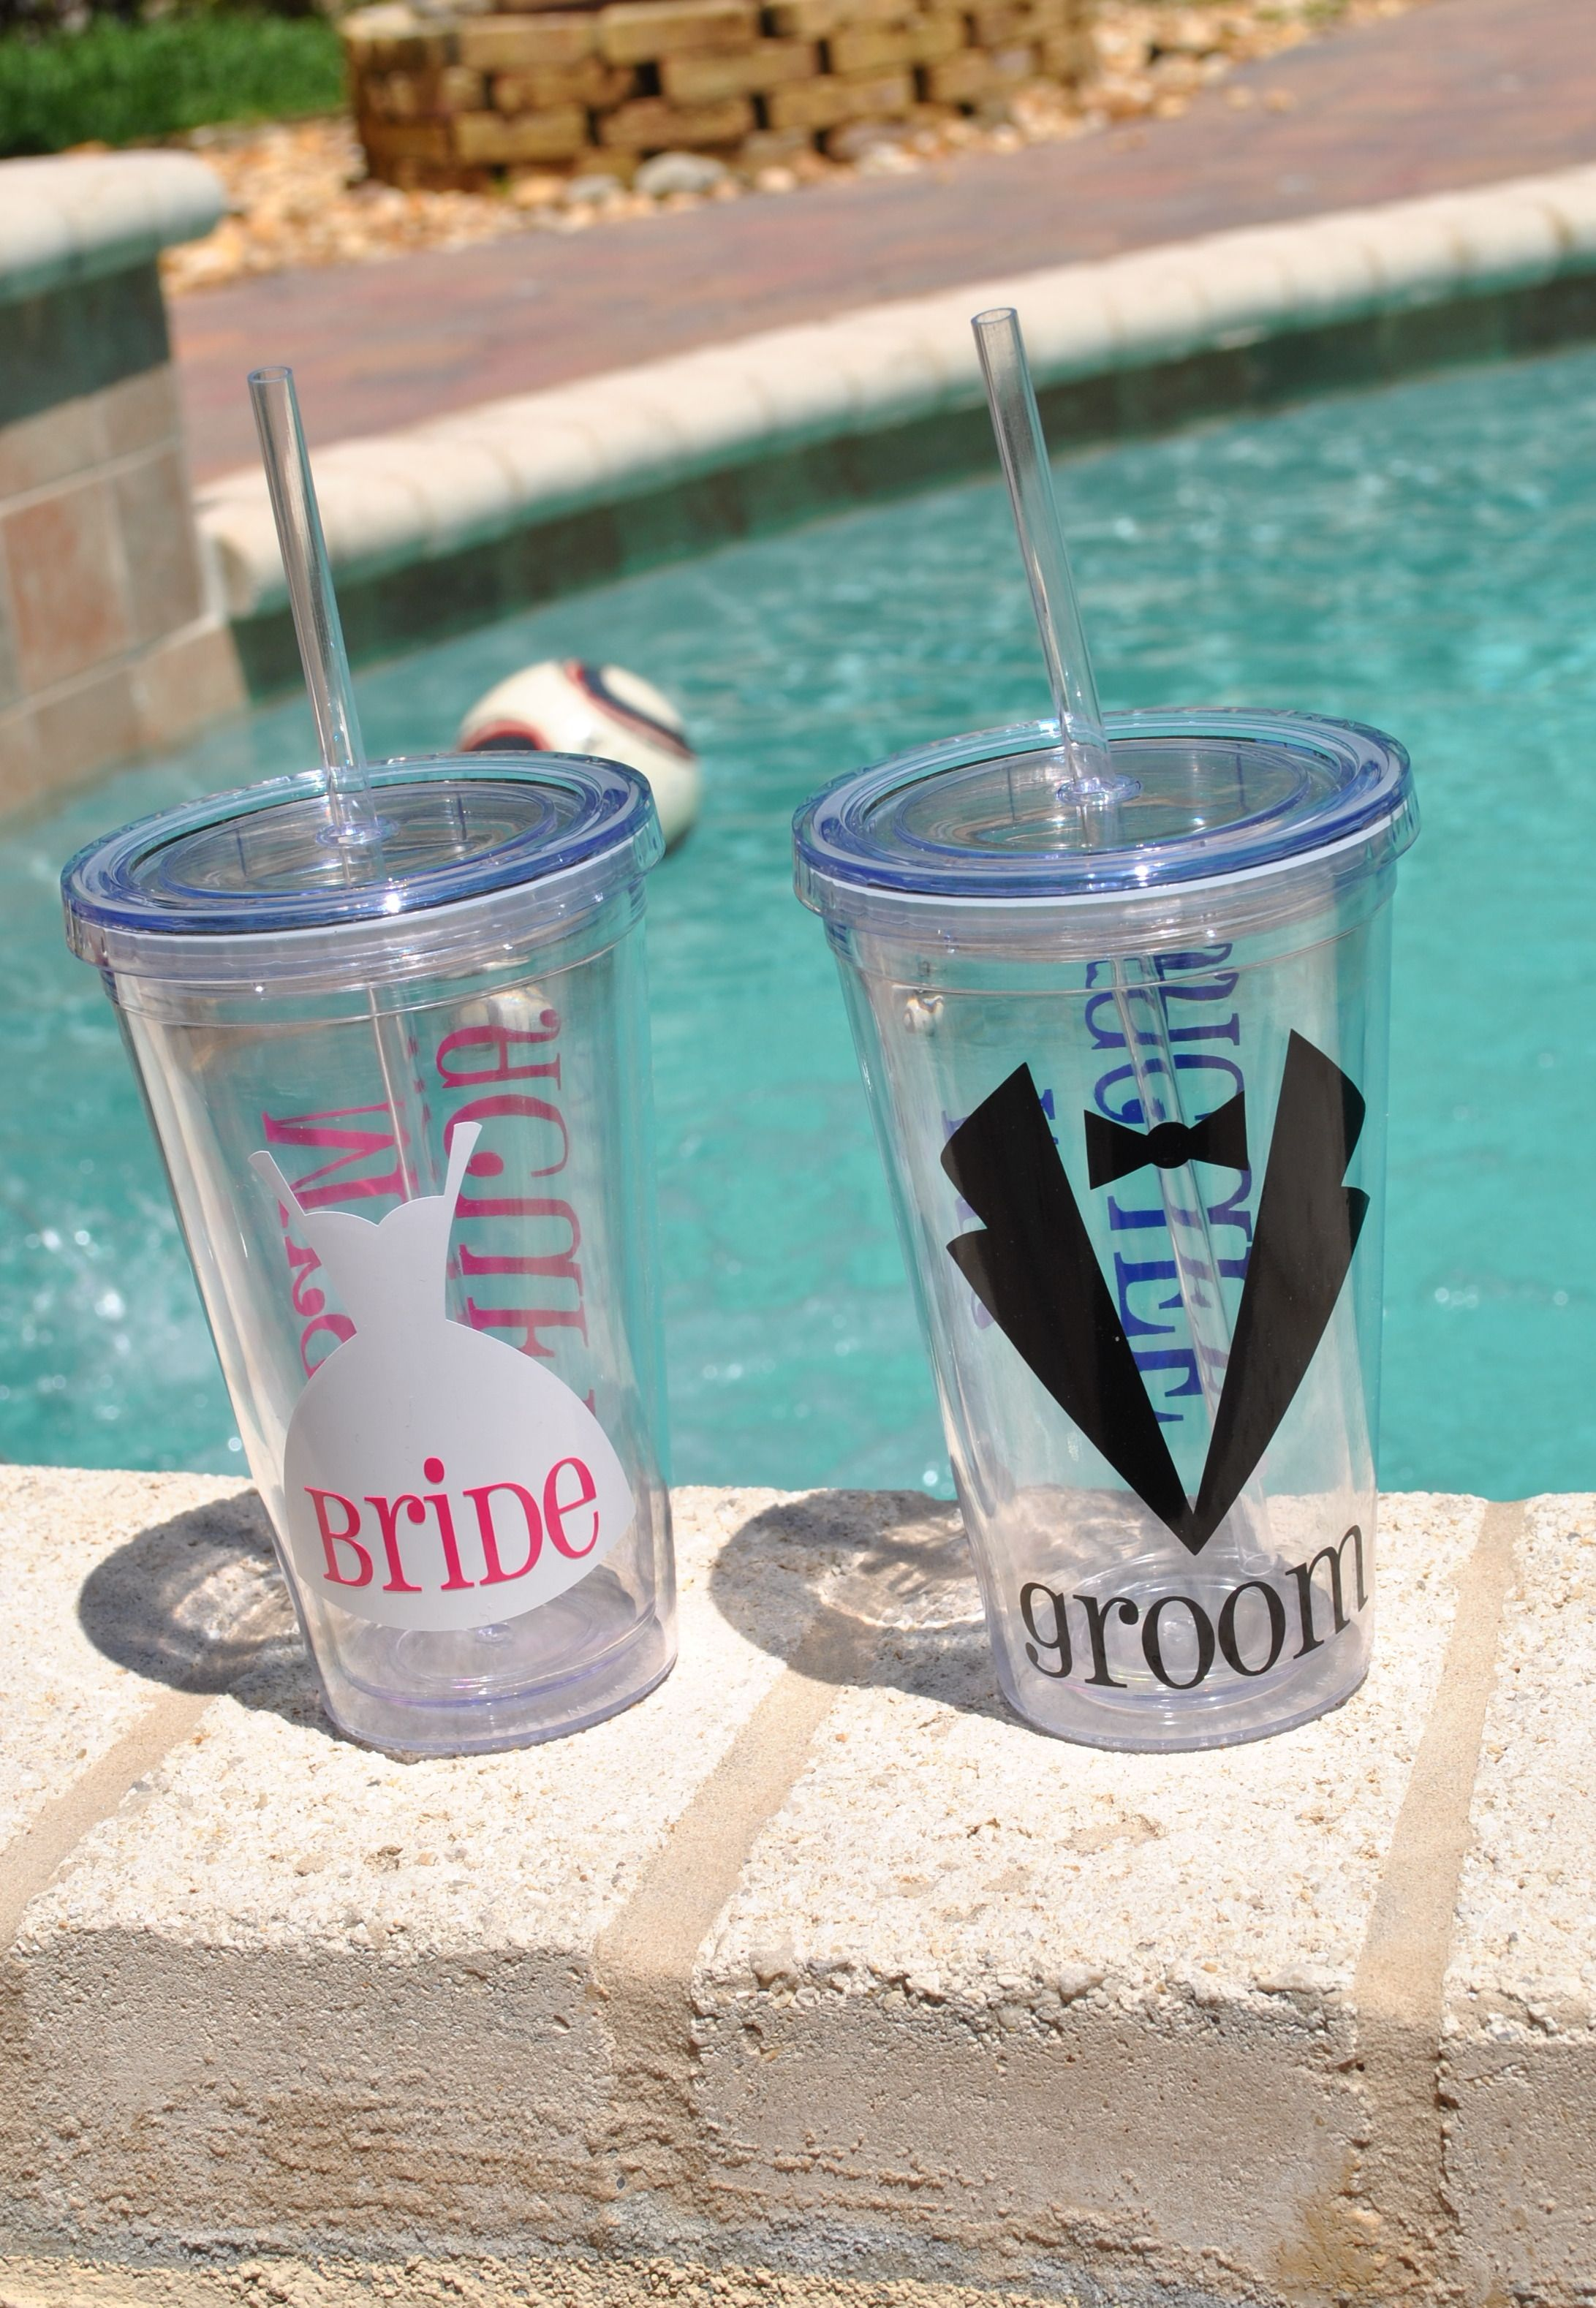 Bride And Groom Tumblers We Can Make Then For The Bridal